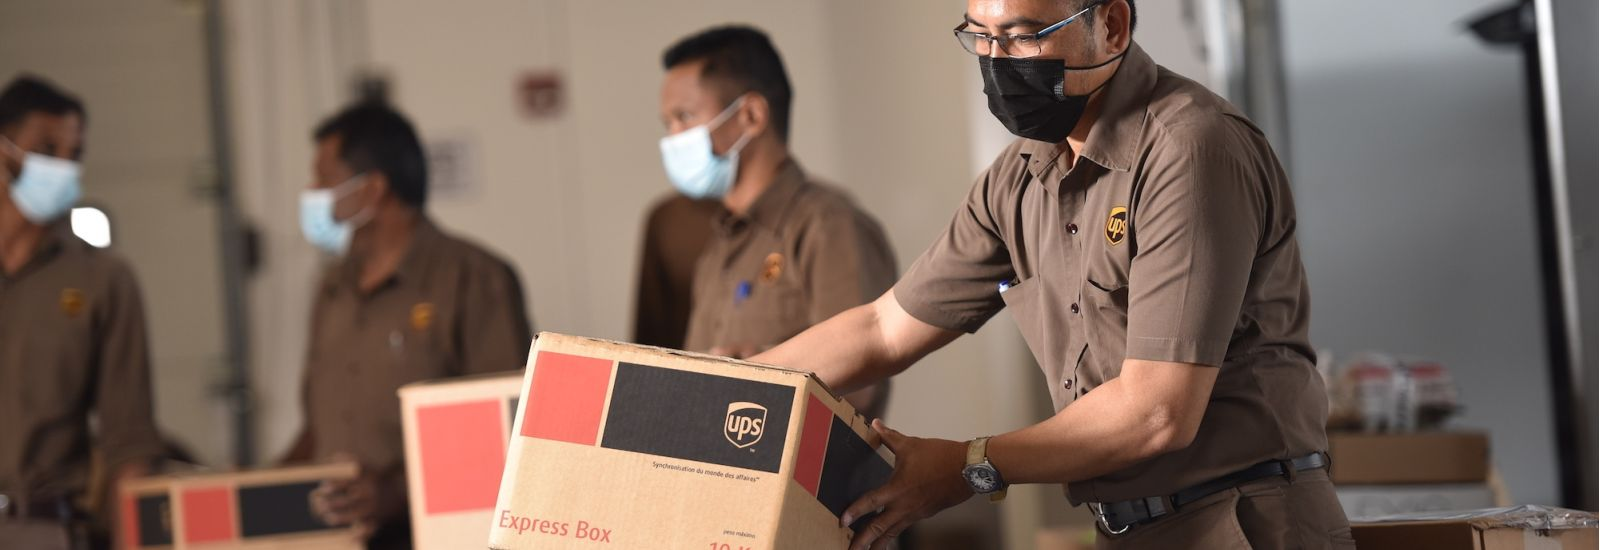 UPS packaging facility, workers in brown uniforms with masks handling packages